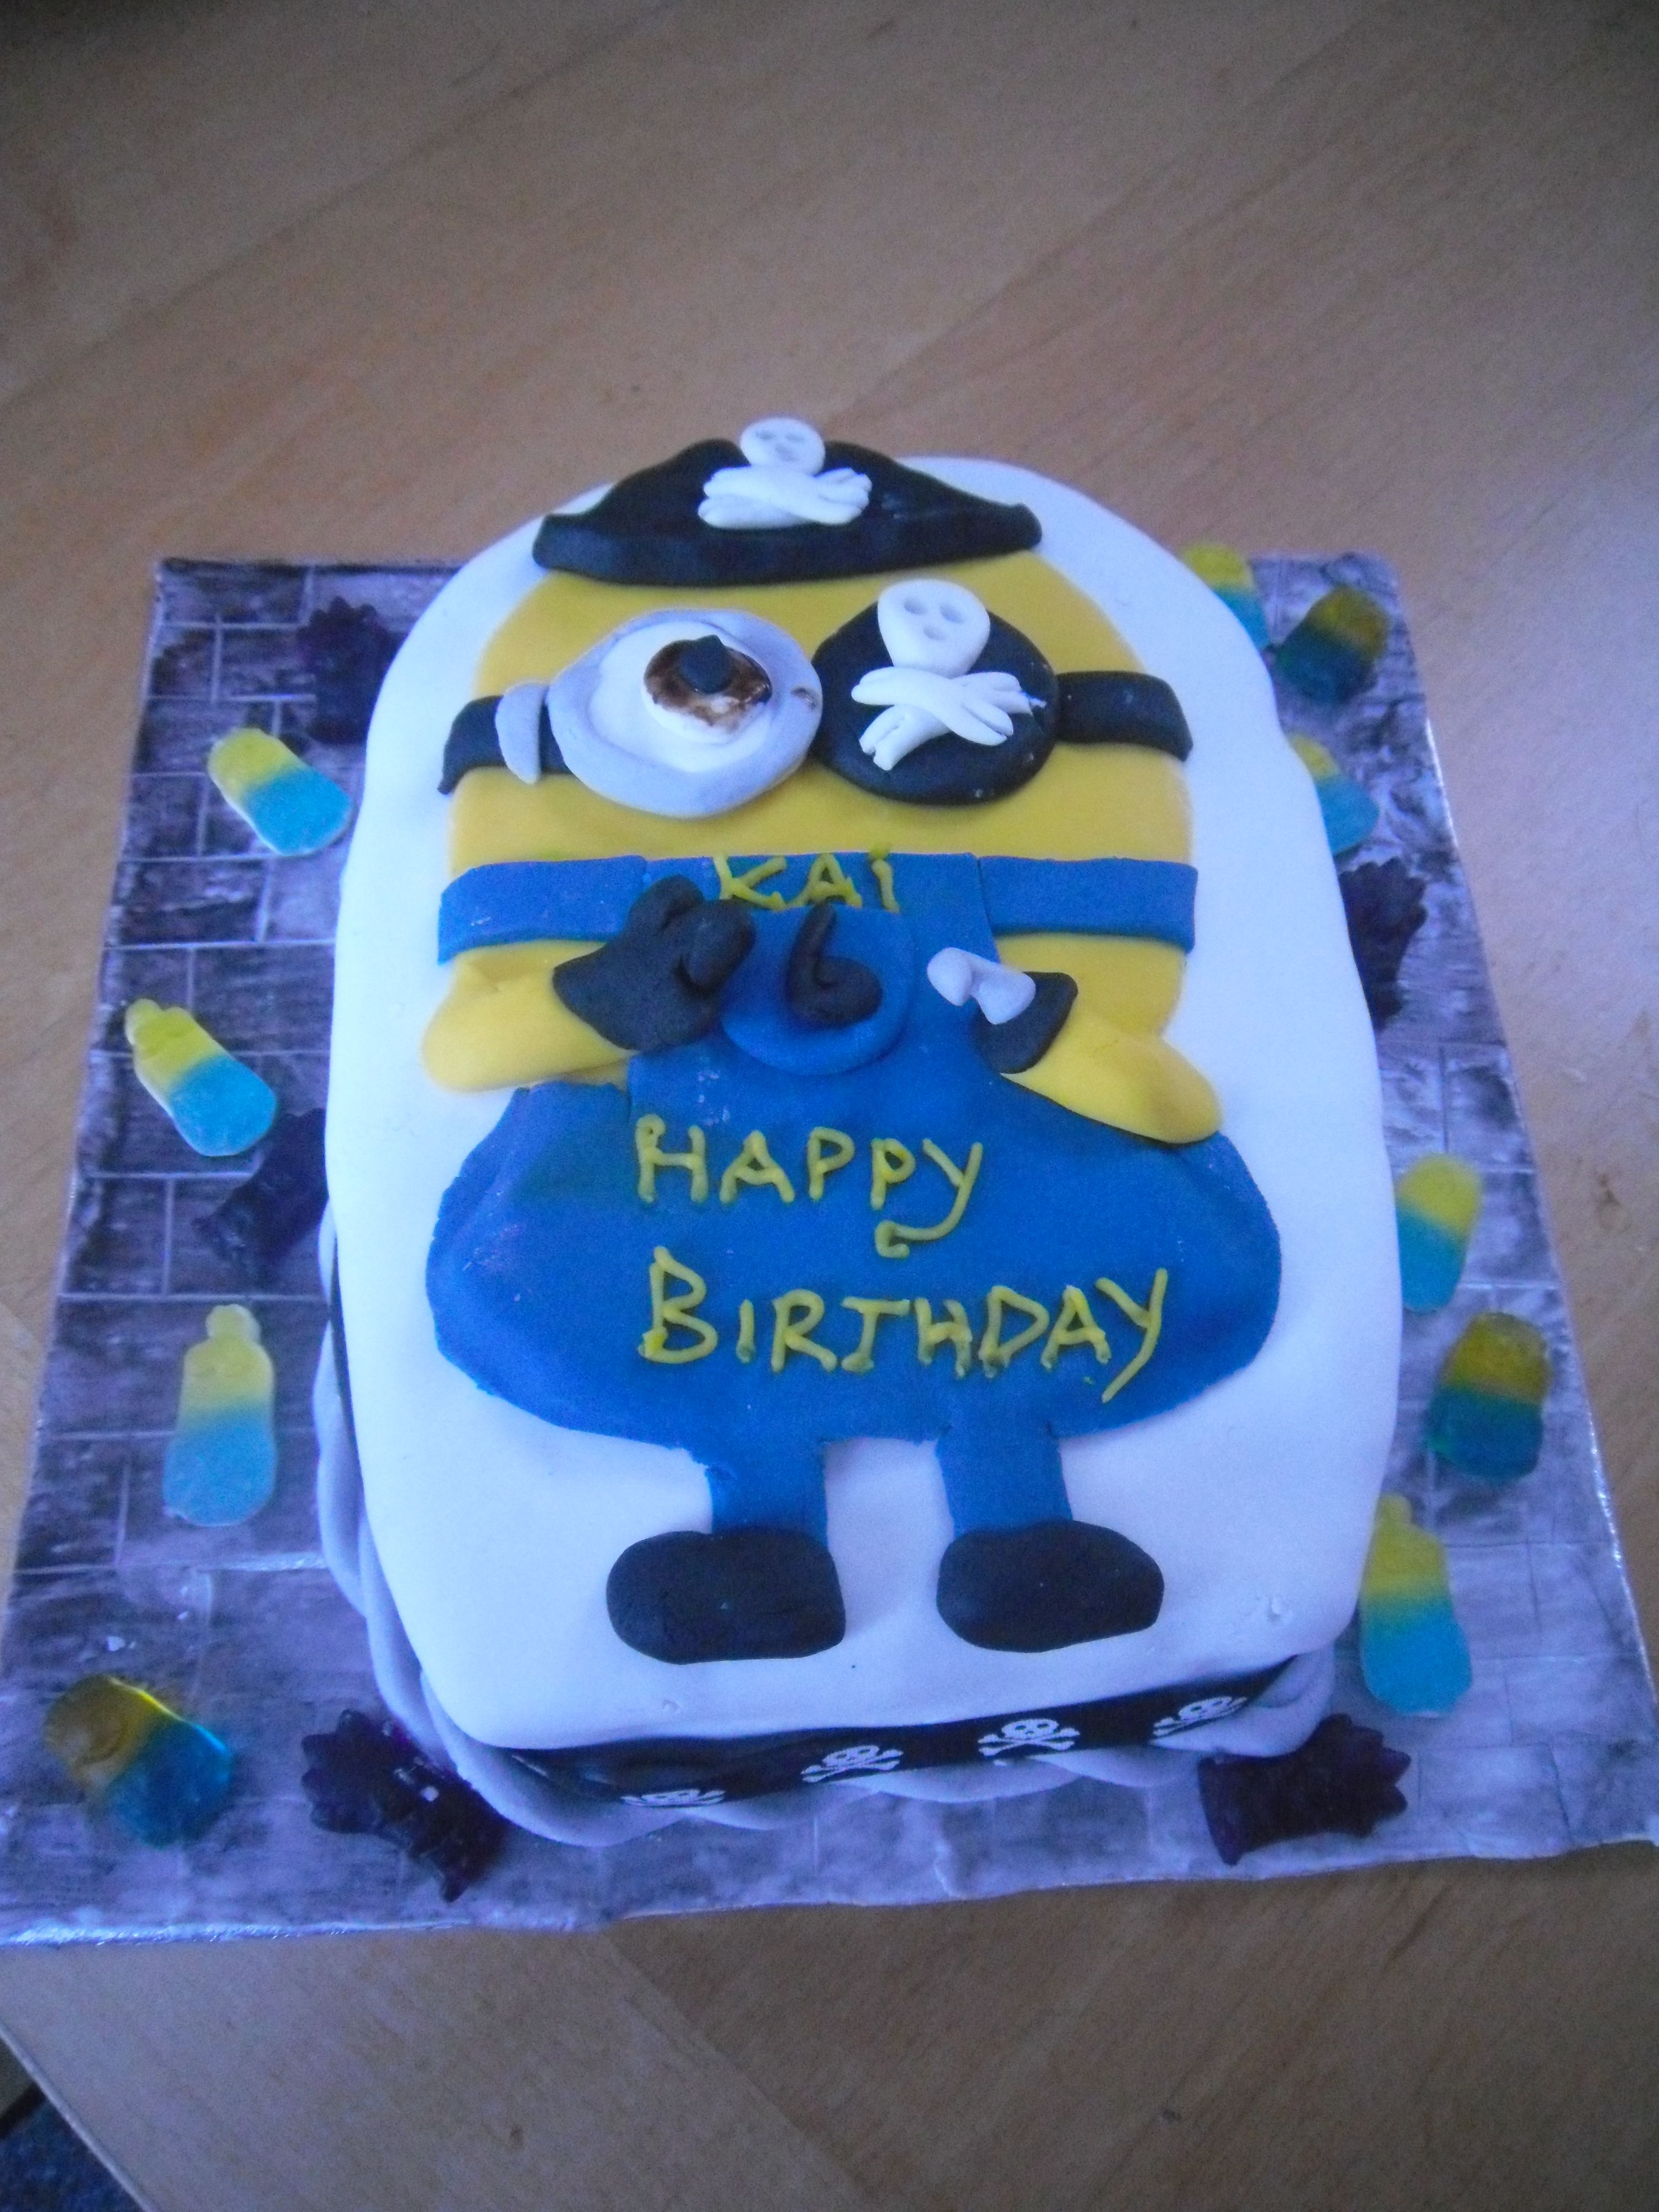 Pirate Minion cake Edinburgh Pinterest Minion cakes and Cake